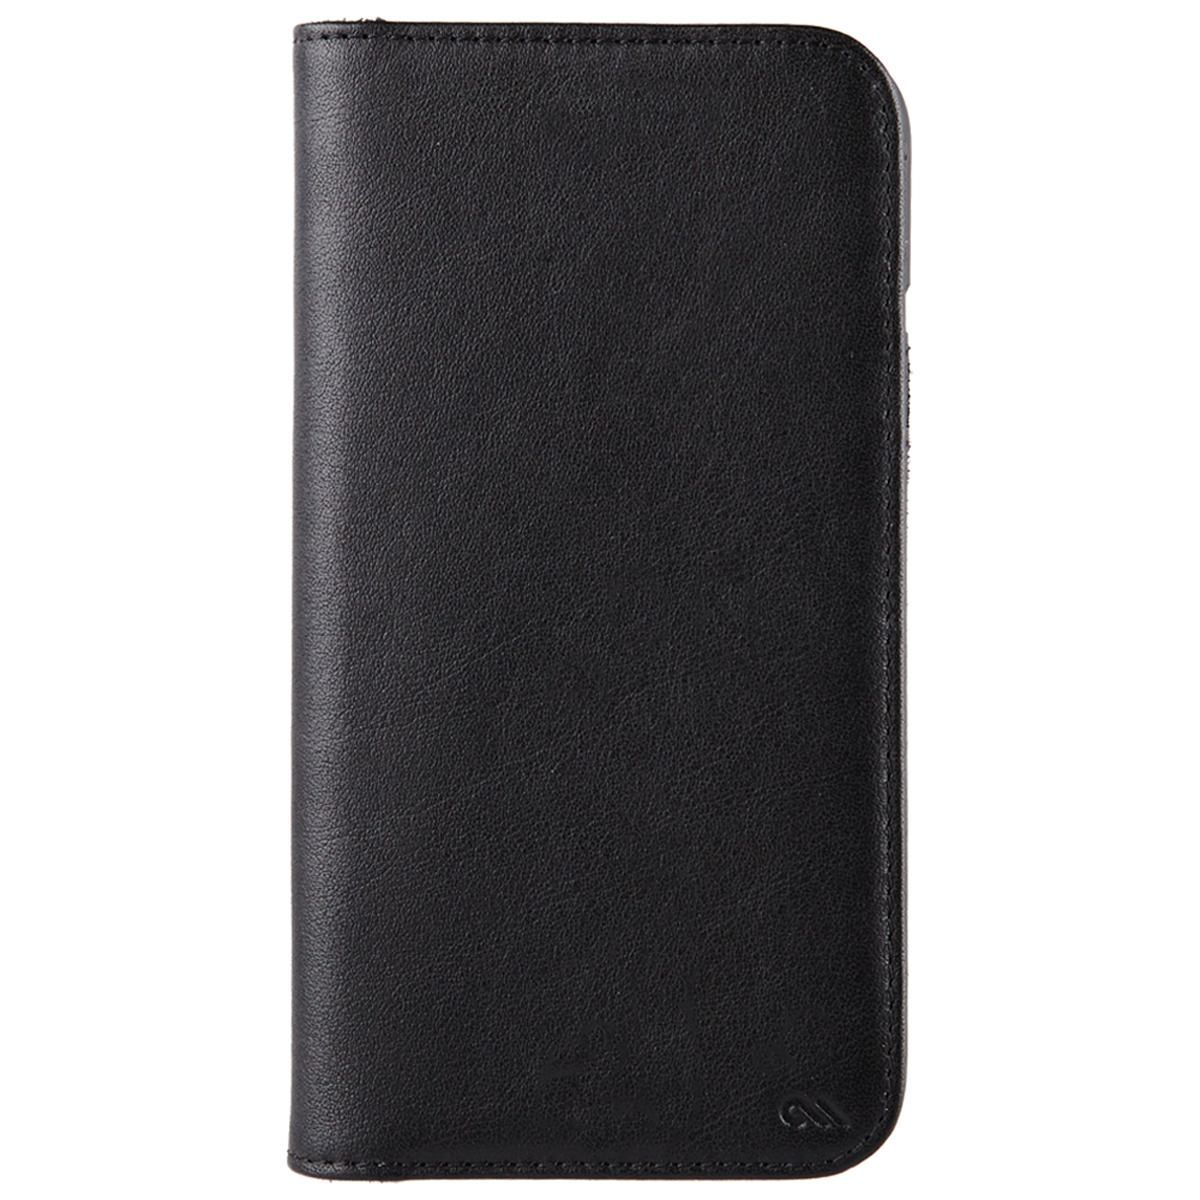 low priced c9aa0 5812f Casemate Case-Mate Wallet Folio for iPhone X Black